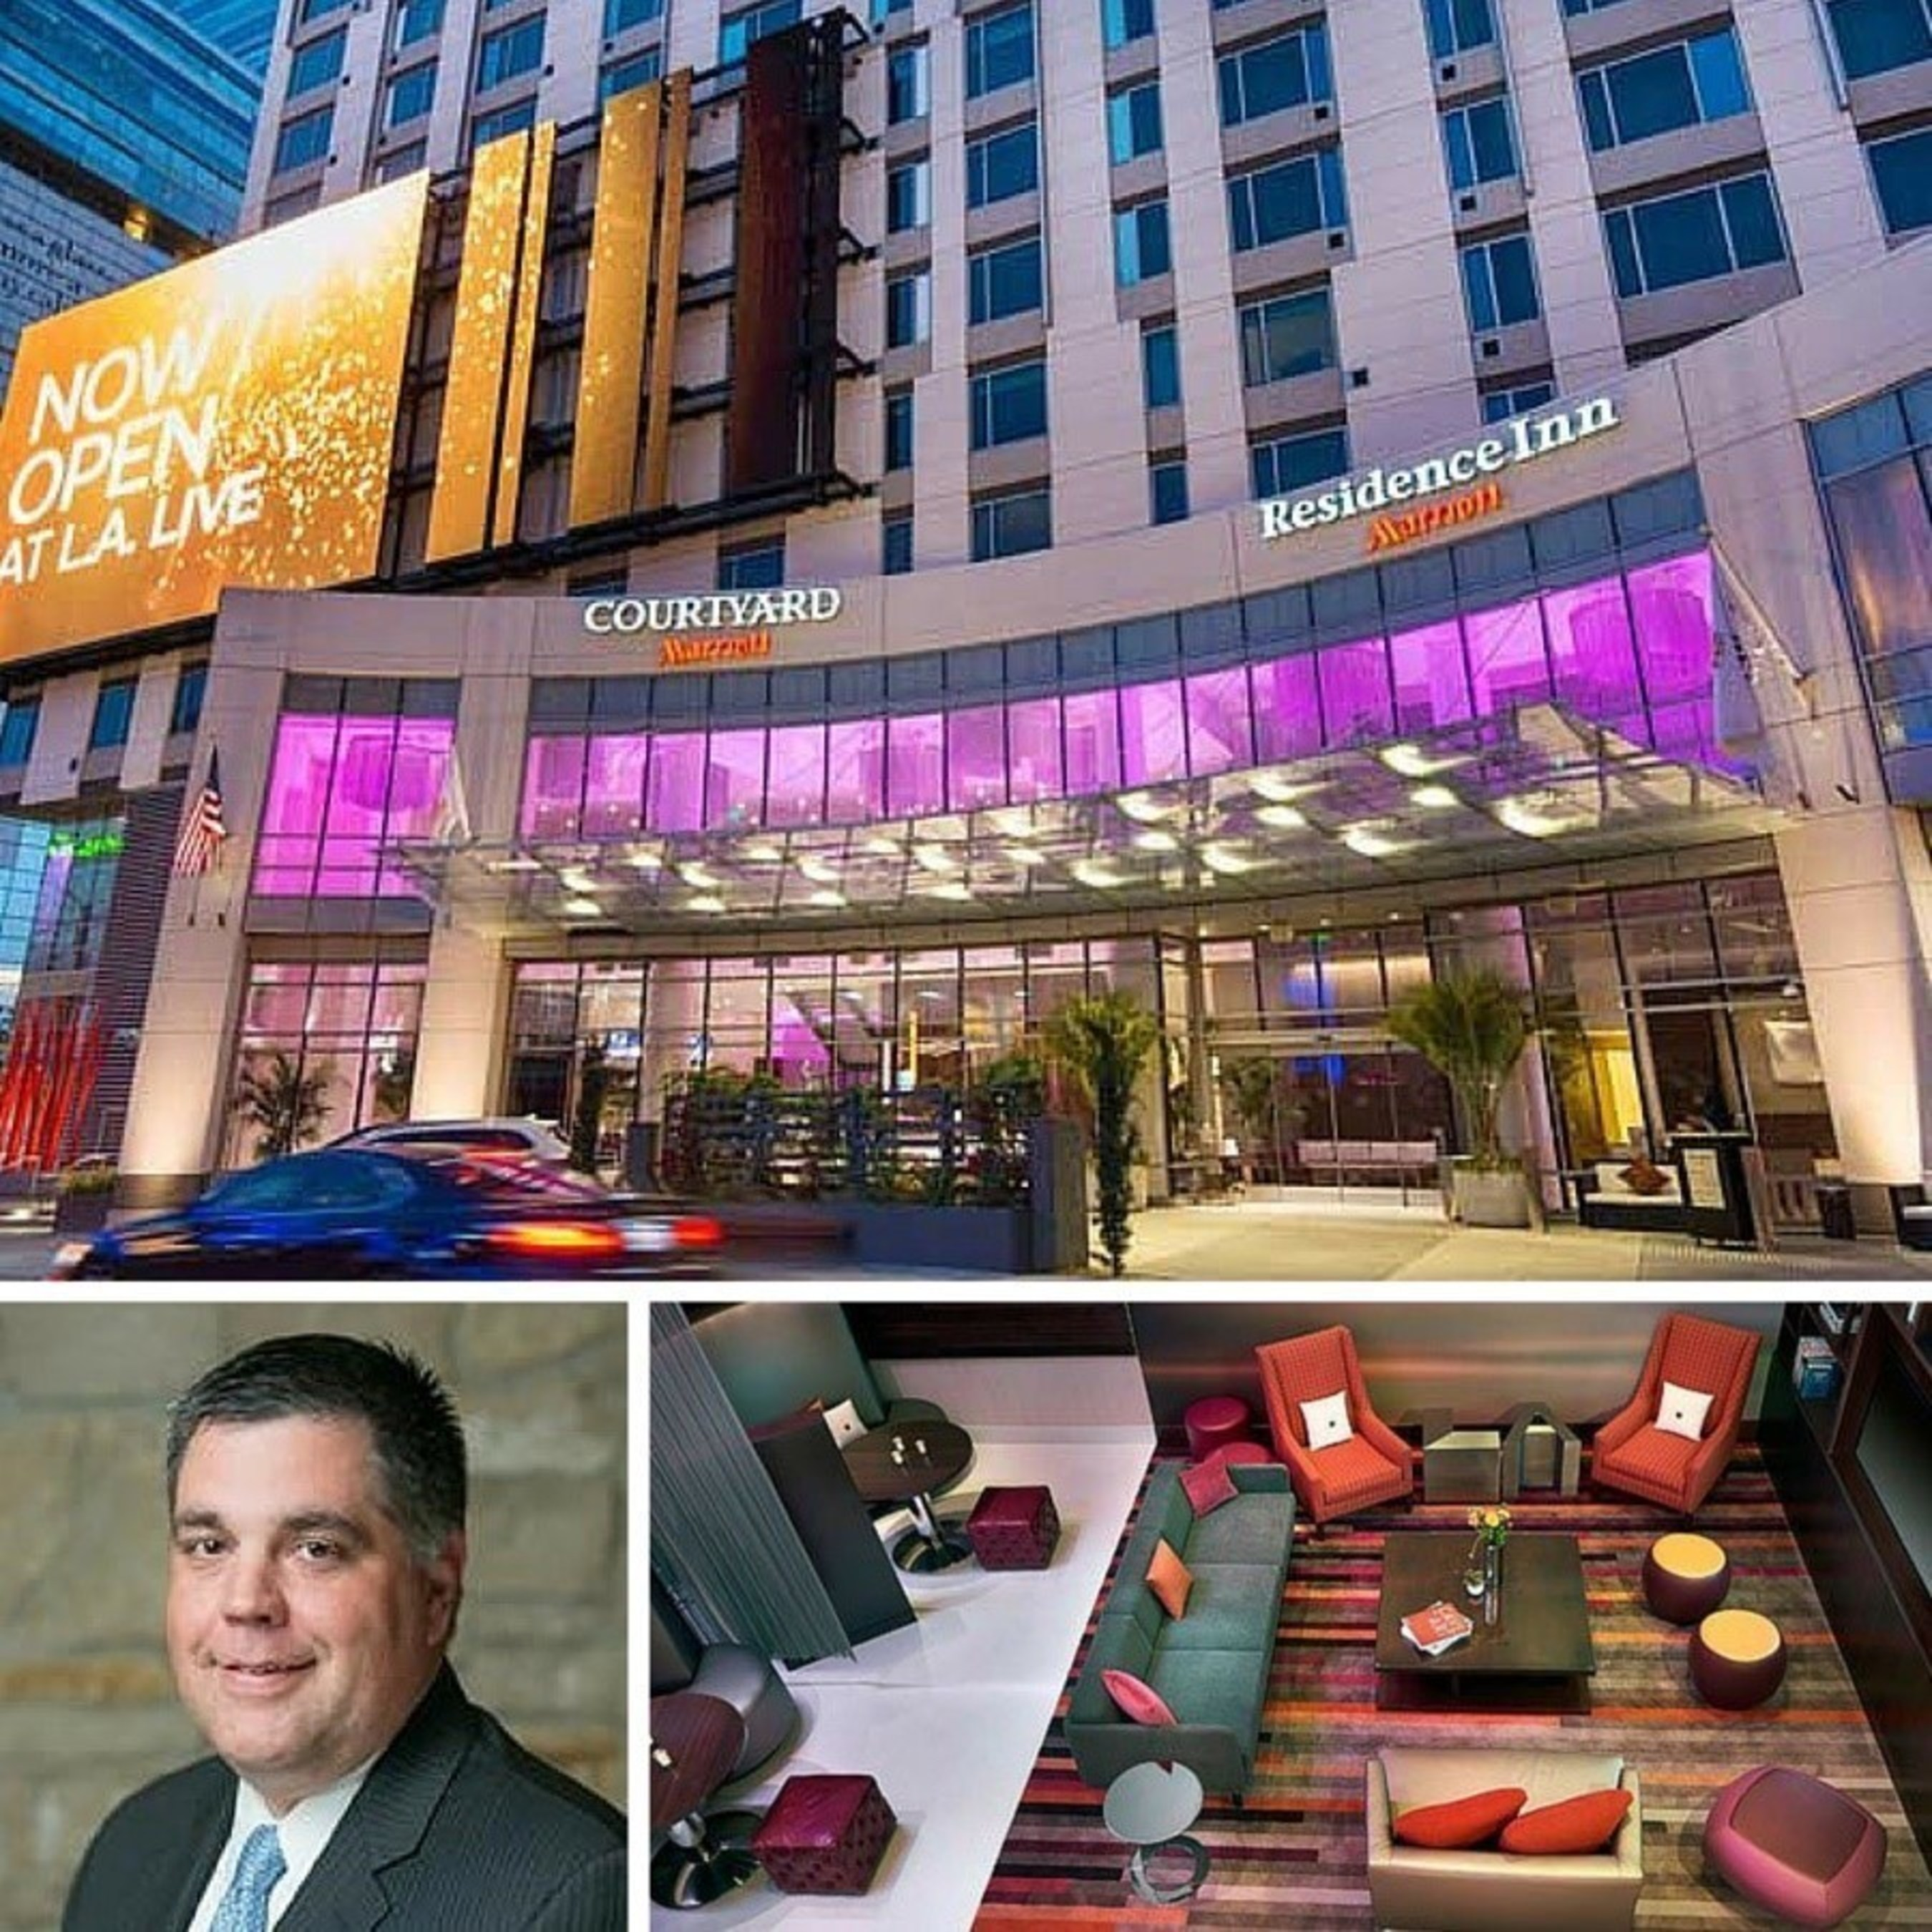 Courtyard and Residence Inn Los Angeles L.A Live is proud to announce Marriott veteran Jim Redington as the new dual manager of the one-of-a-kind downtown hotel. For information, visit www.marriott.com/LAXLD and www.marriott.com/LAXRI or call 1-213-443-9200.